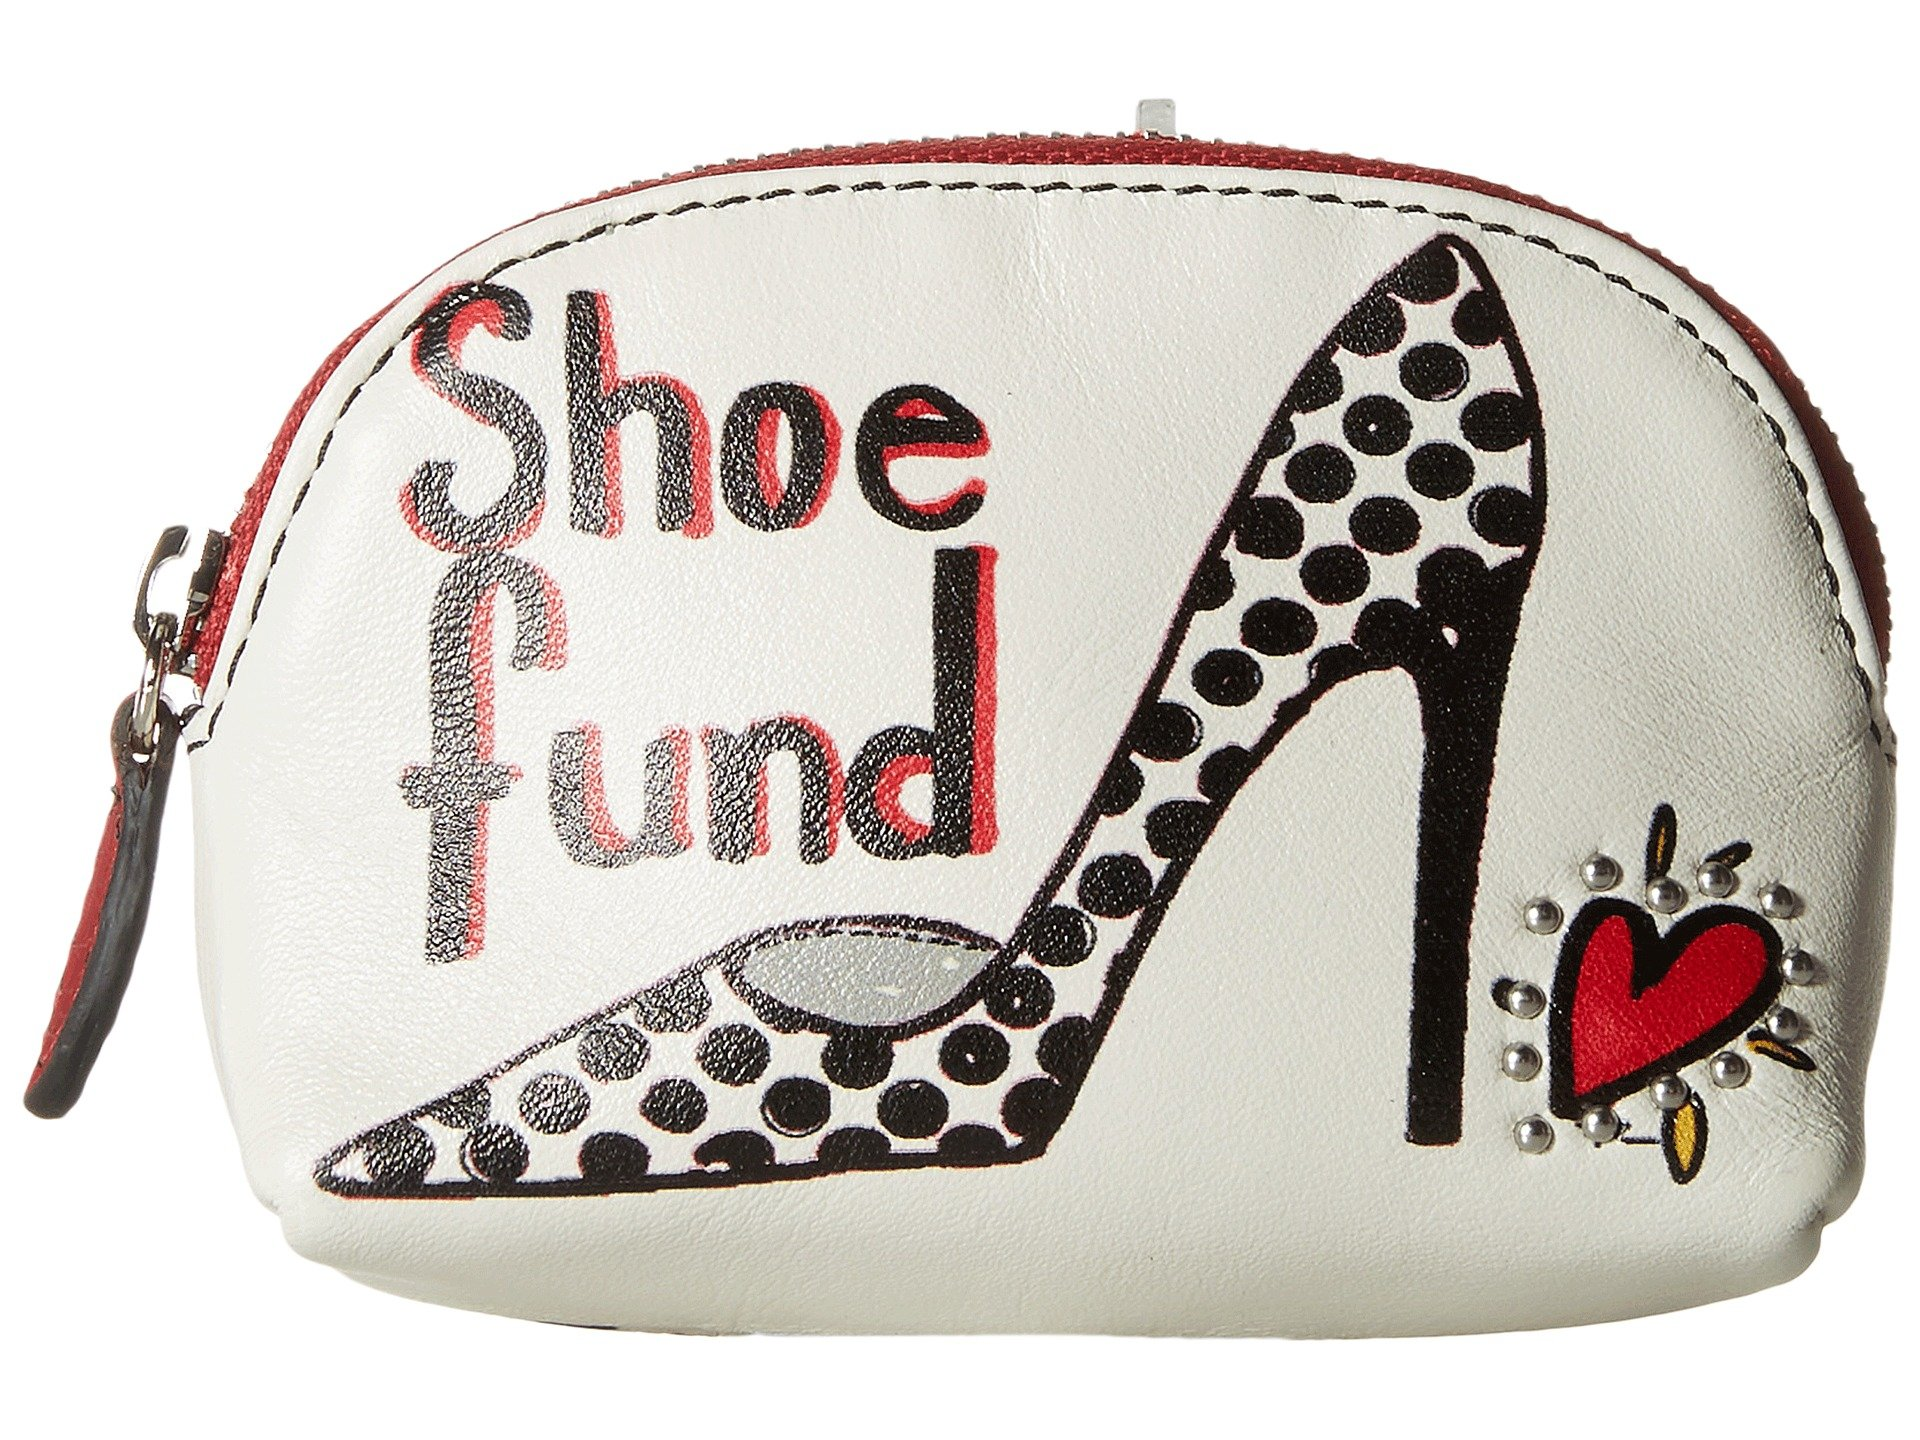 Brighton Mini Shoe Coin Fashionista Fund Multi rYrSw